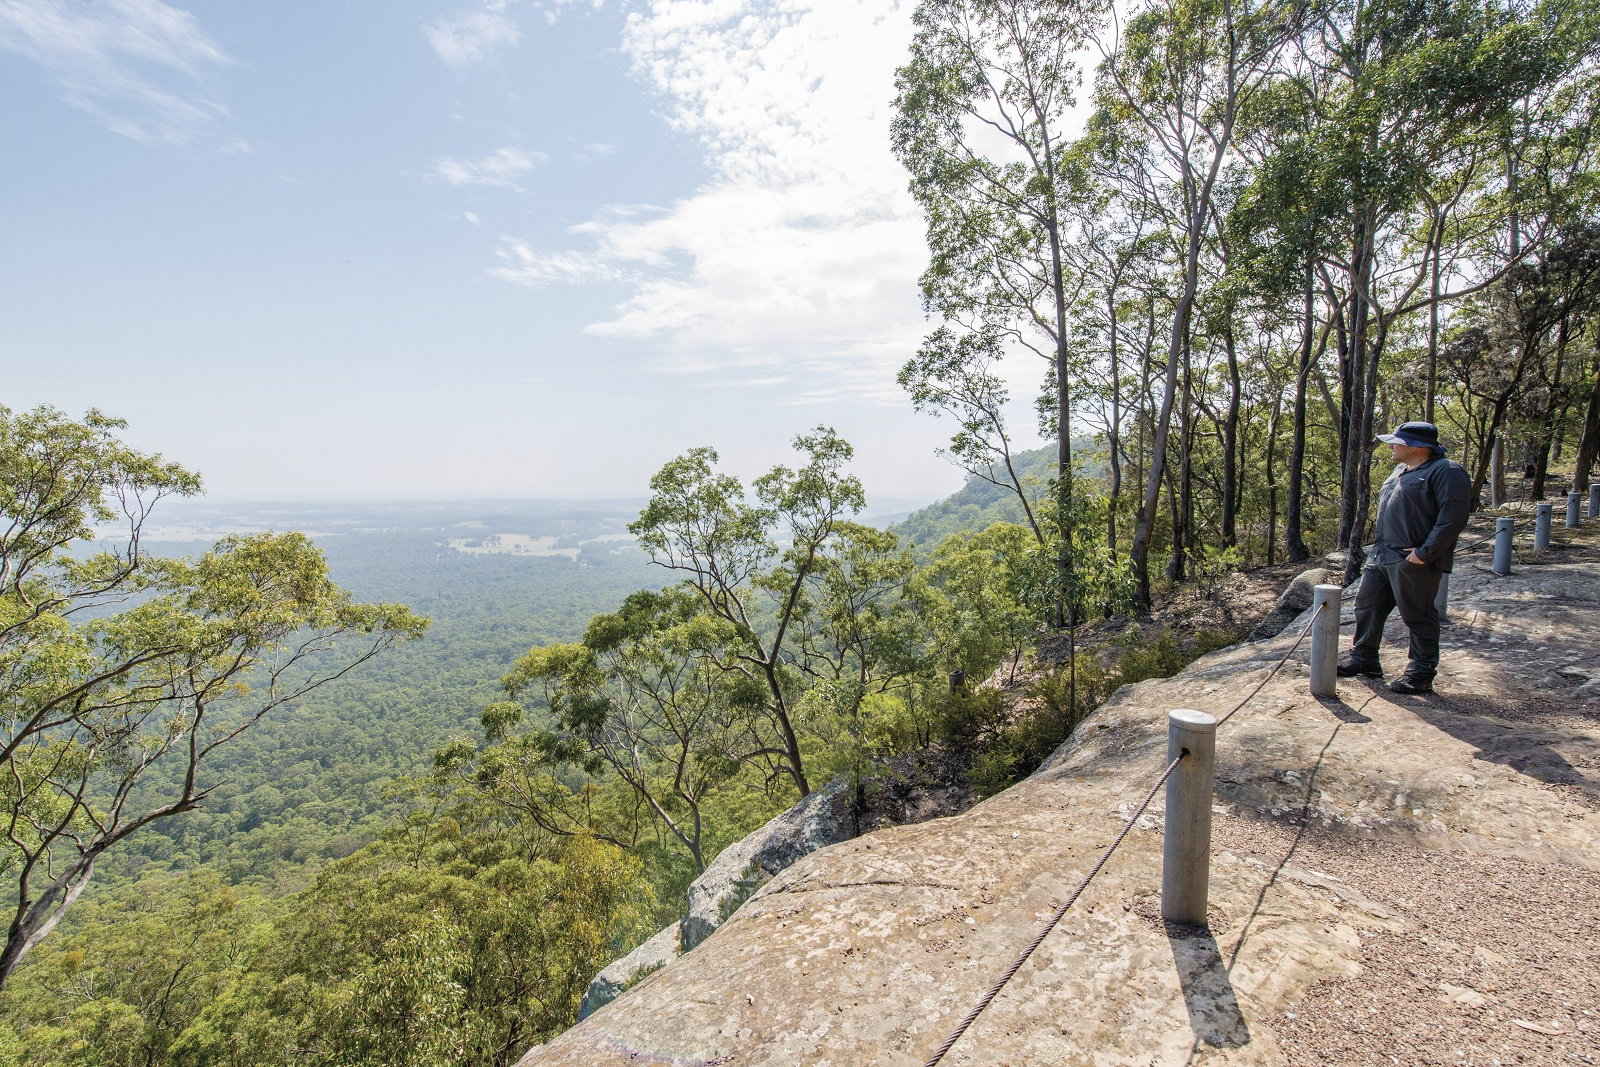 The Narrow Place lookout in Watagans National Park. Photo: John Spencer/OEH